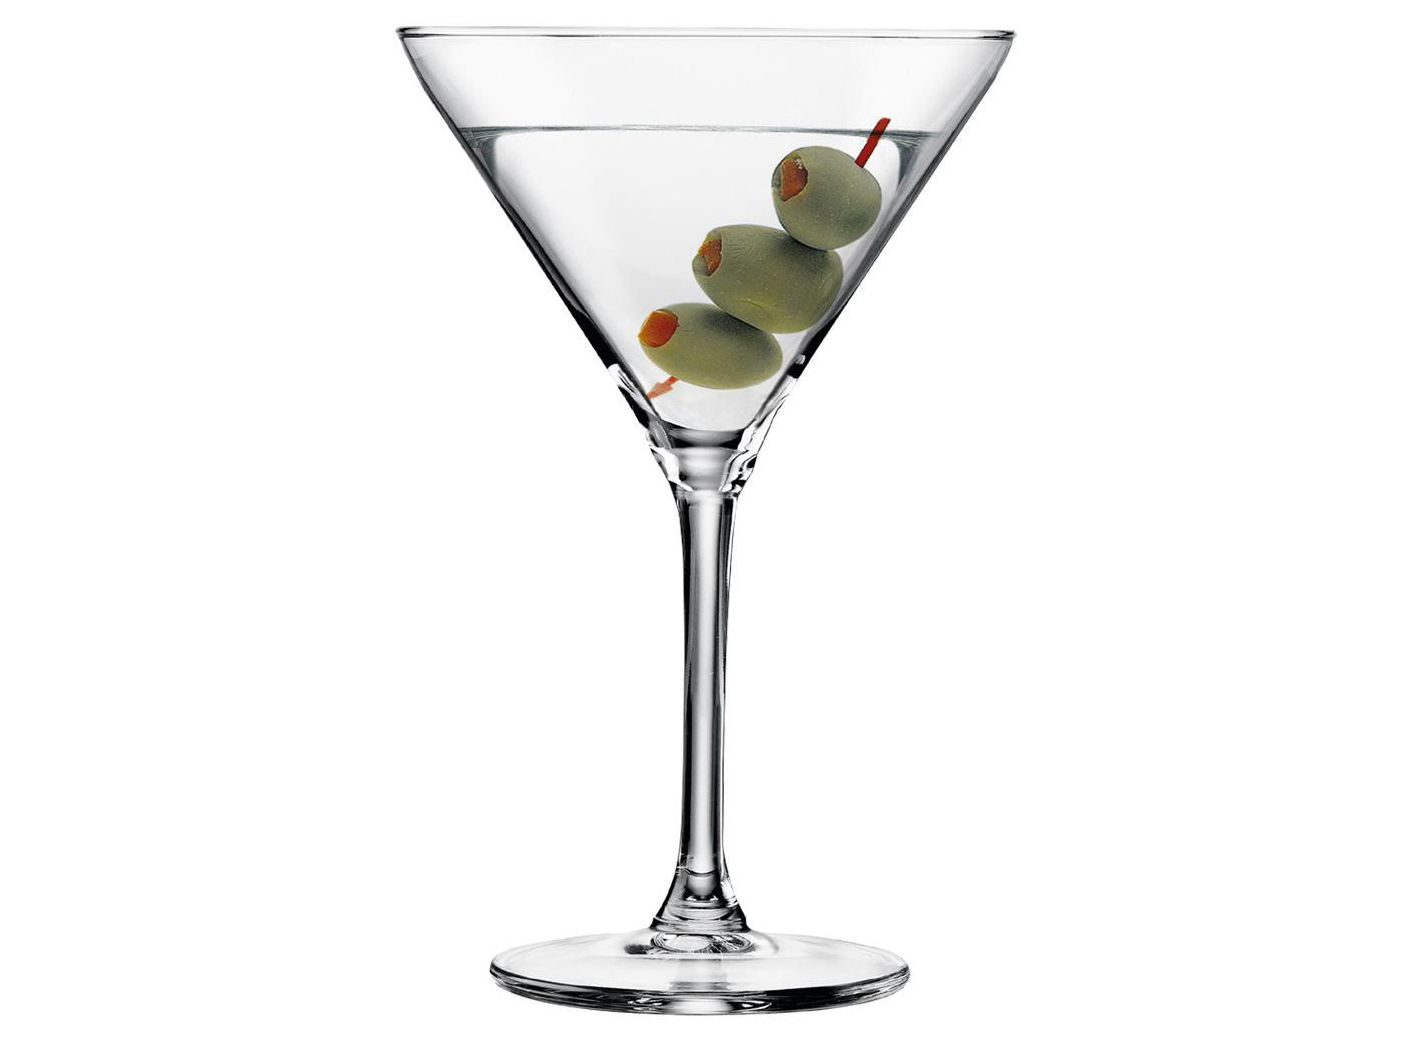 Kieliszki do martini